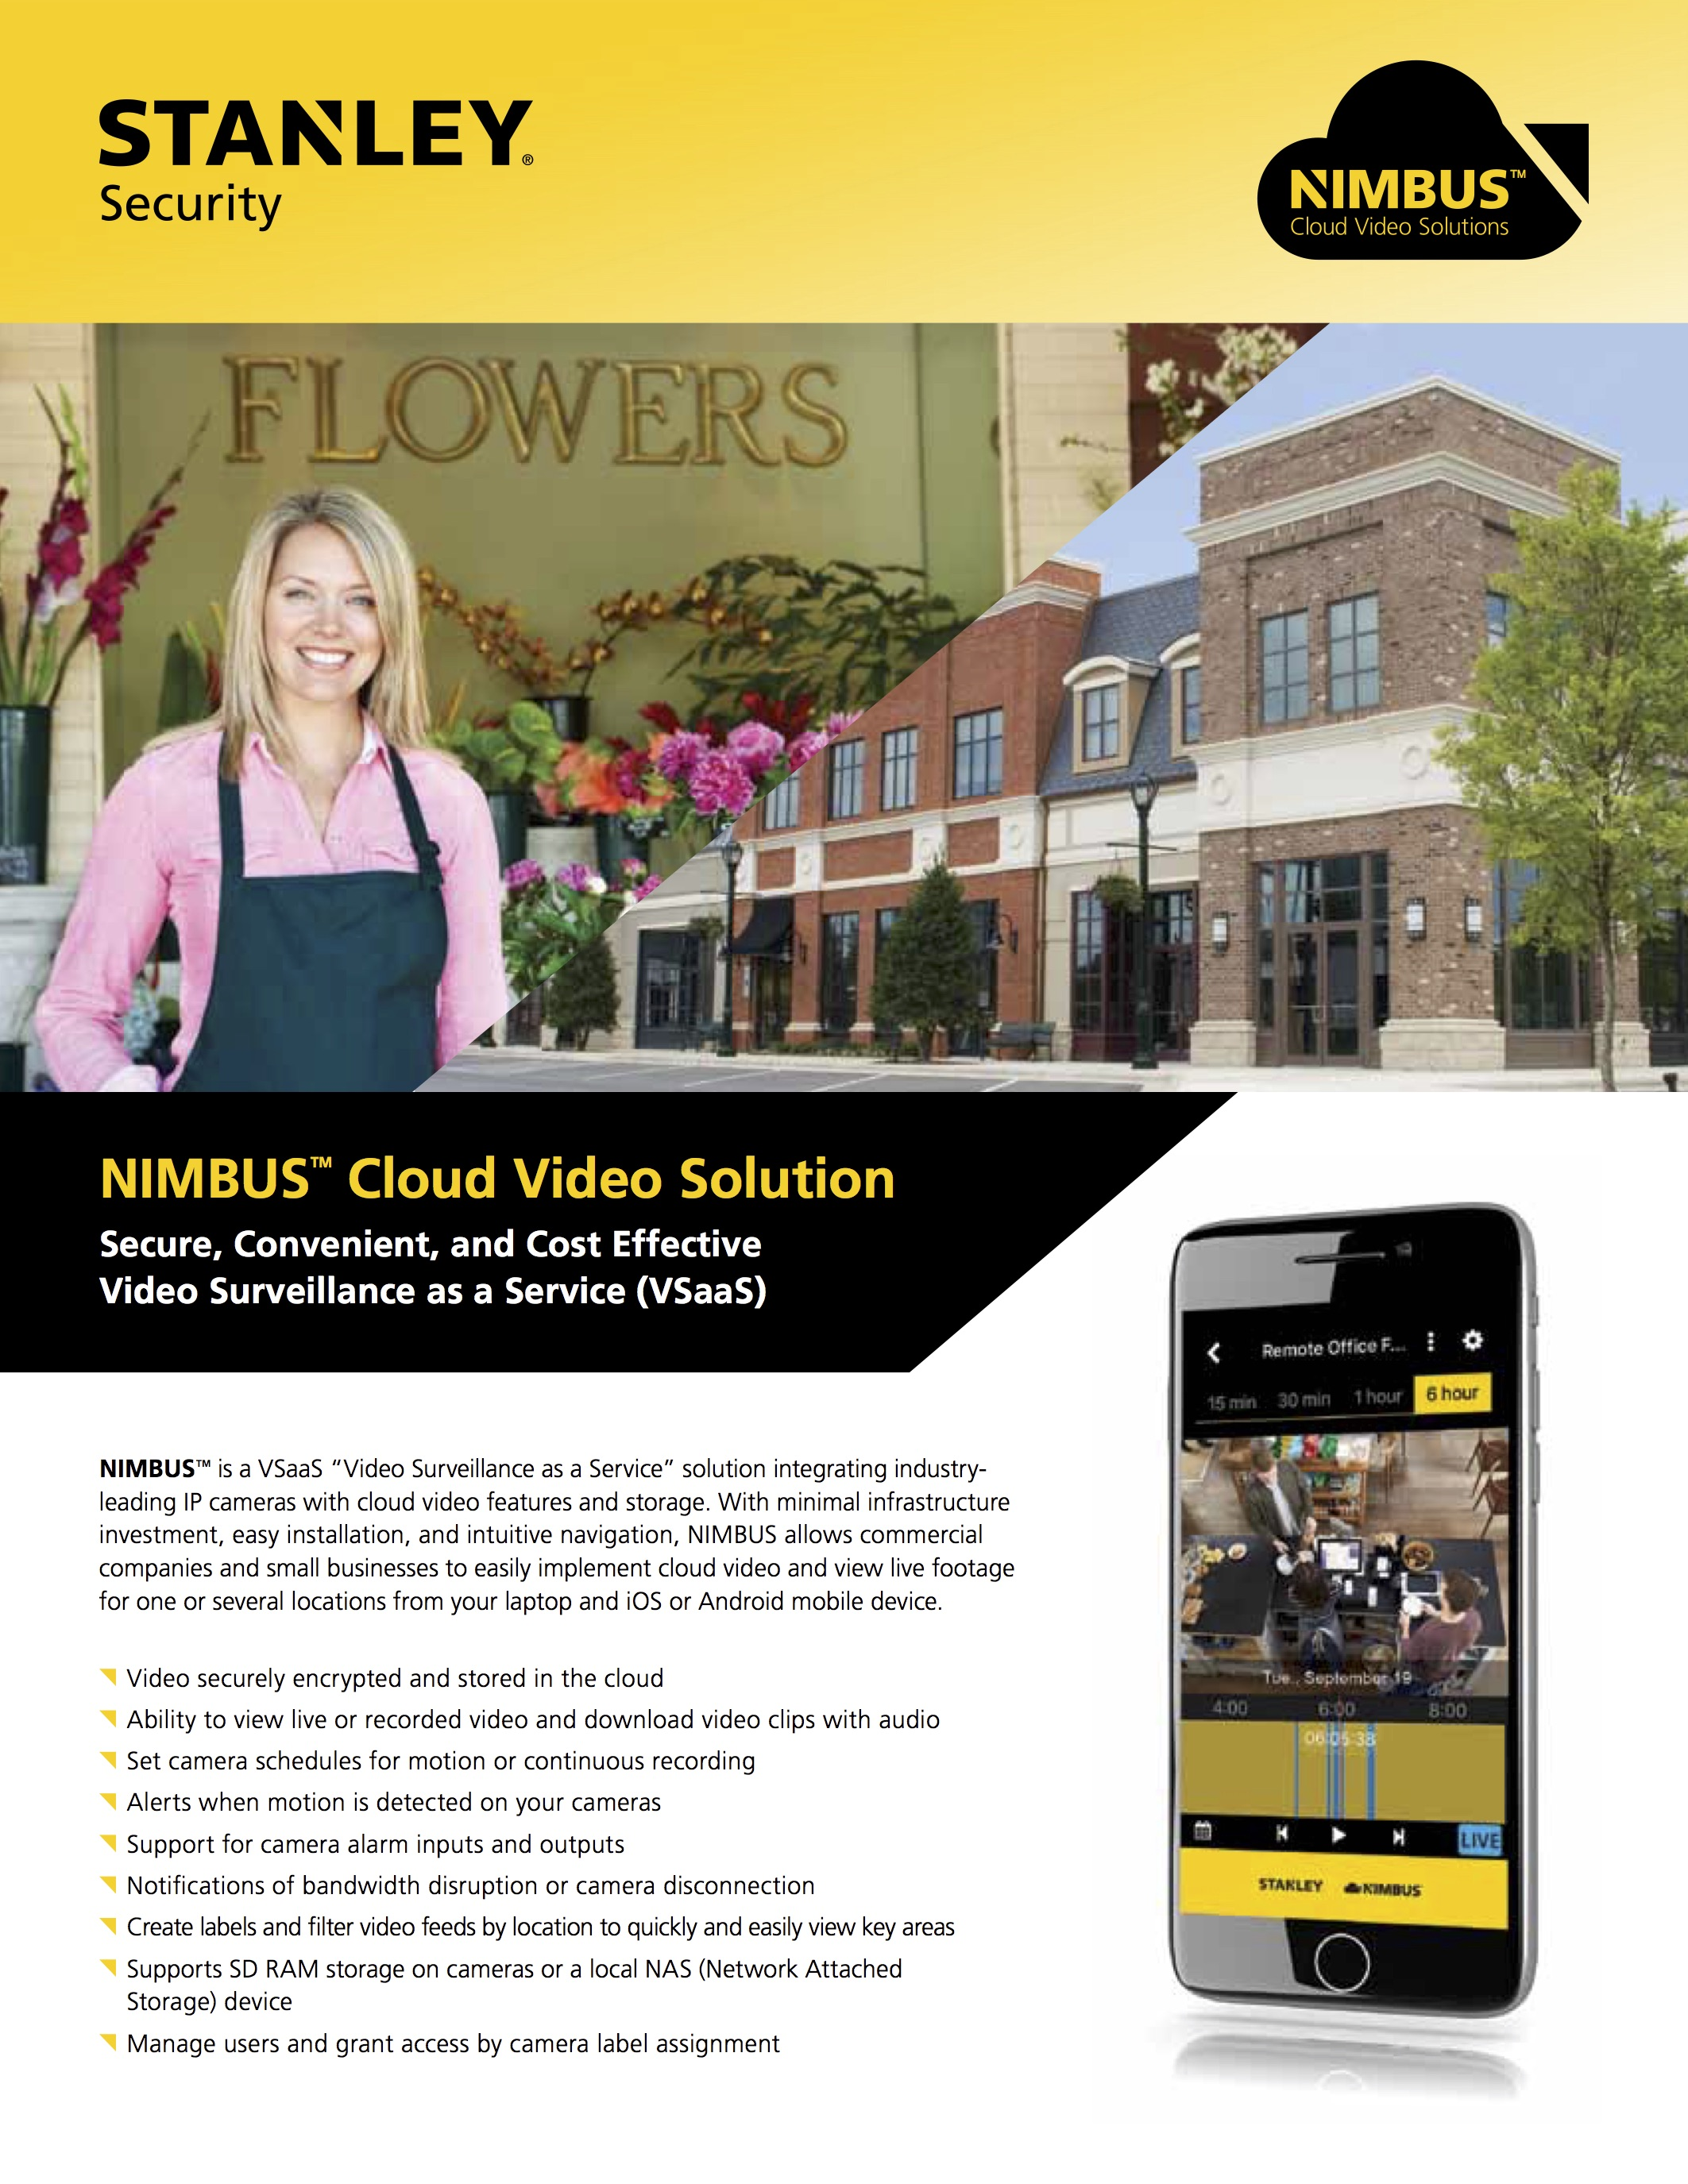 Cloud Video Solutions for Small Businesses - STANLEY NIMBUS™